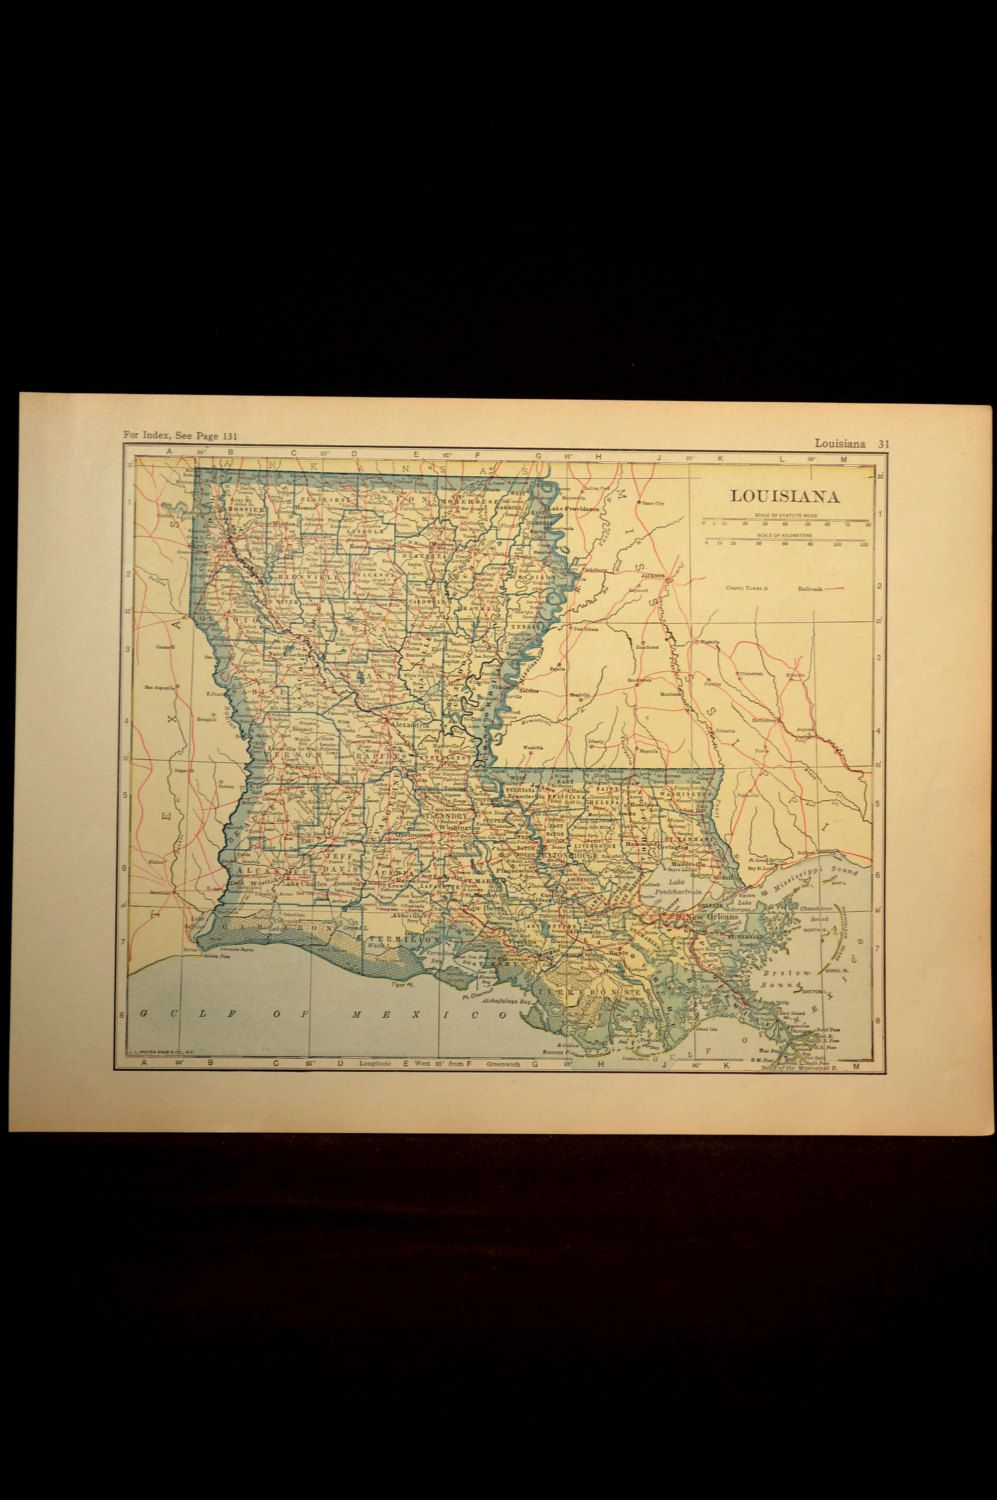 Louisiana Map Louisiana Antique Railroad Yellow 1920s | Map Wall ...